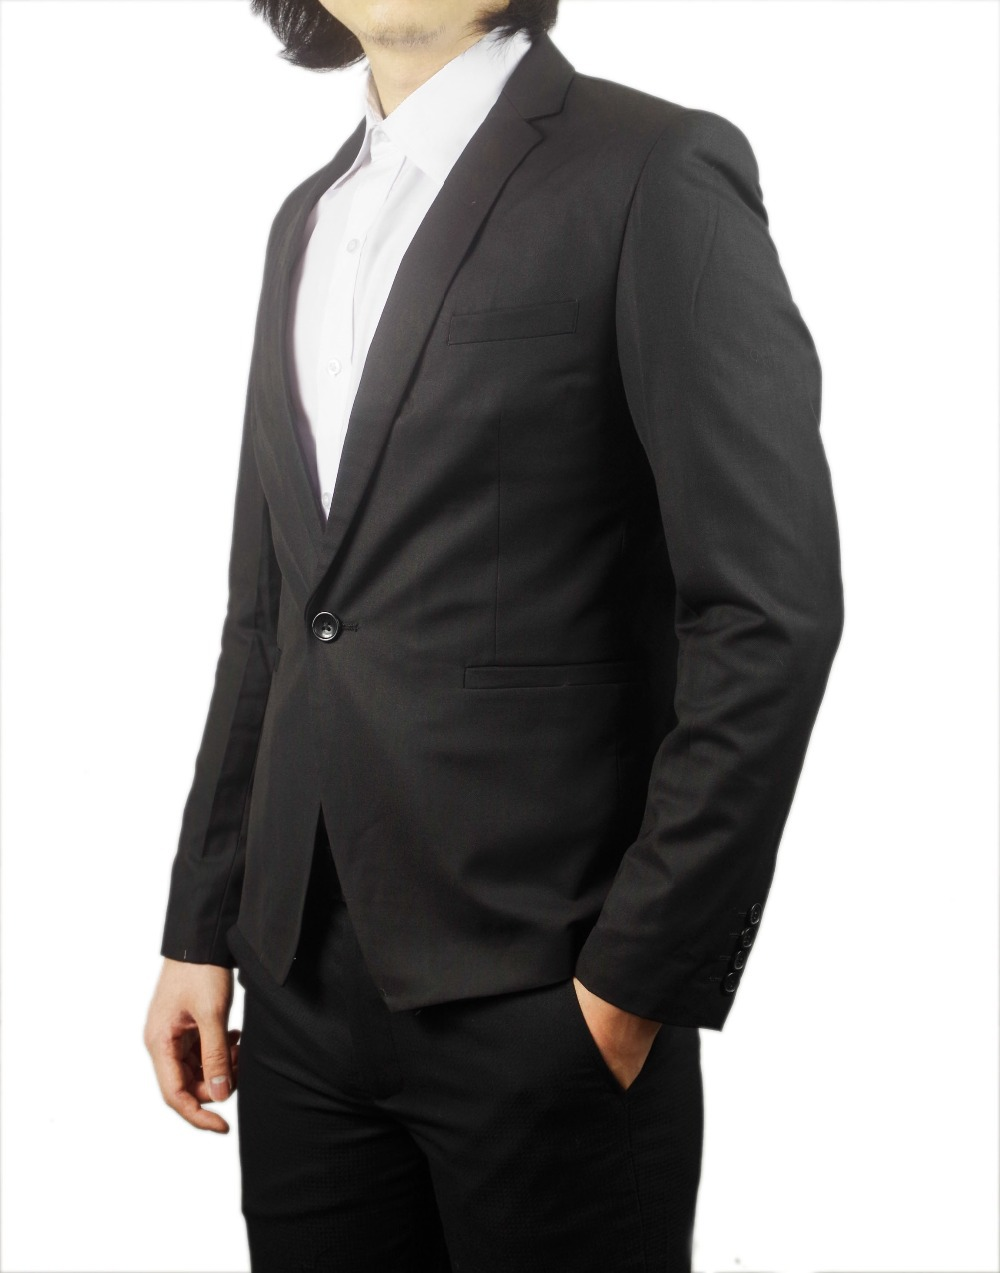 Mens Black Suit Jacket | My Dress Tip